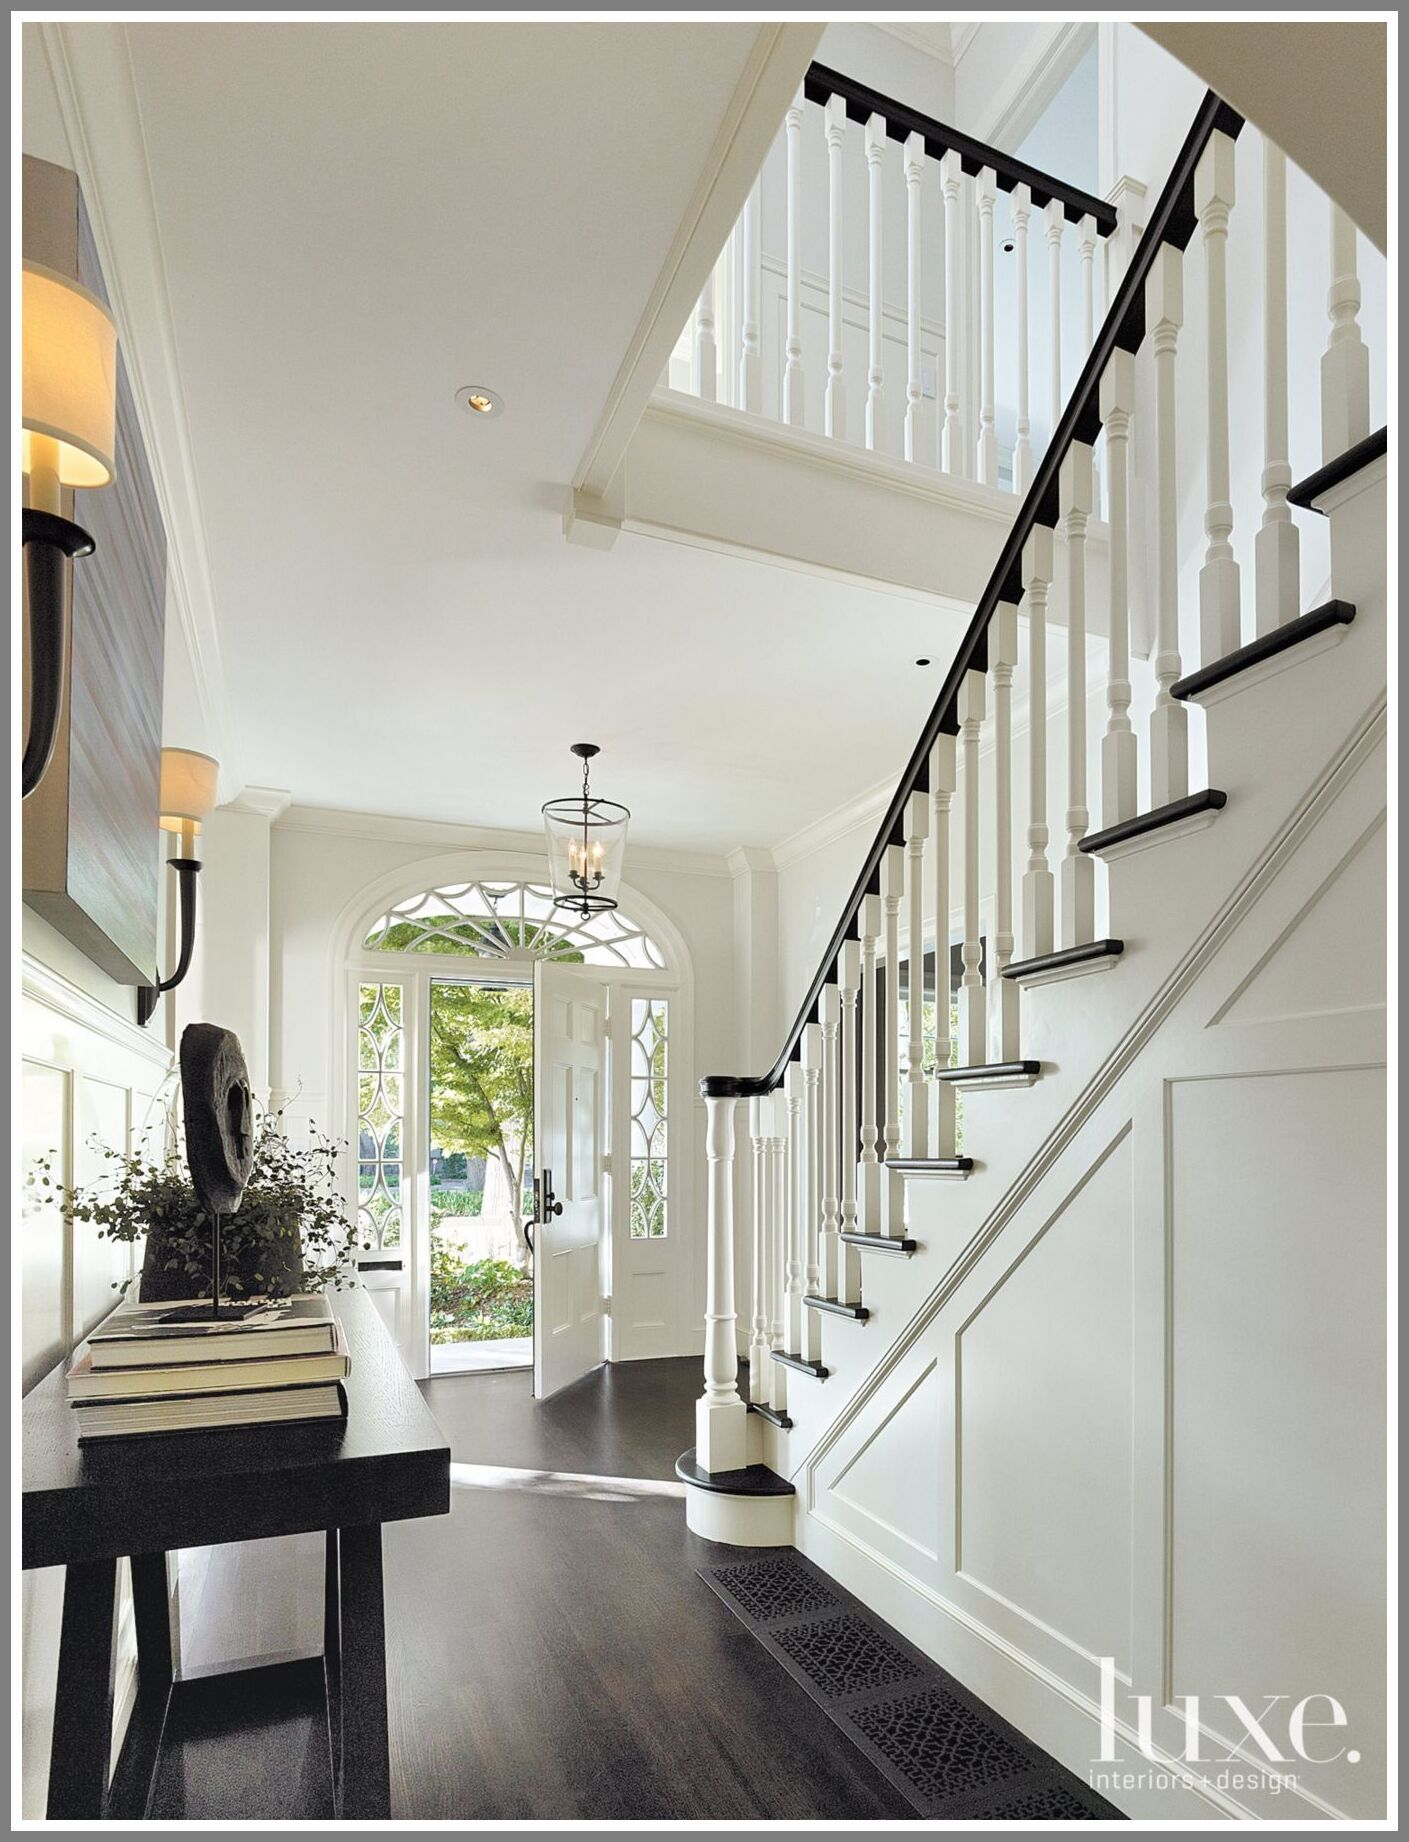 65 Reference Of Entrance Interior Design Ideas In 2020 Colonial House Interior Colonial House Luxe Interiors